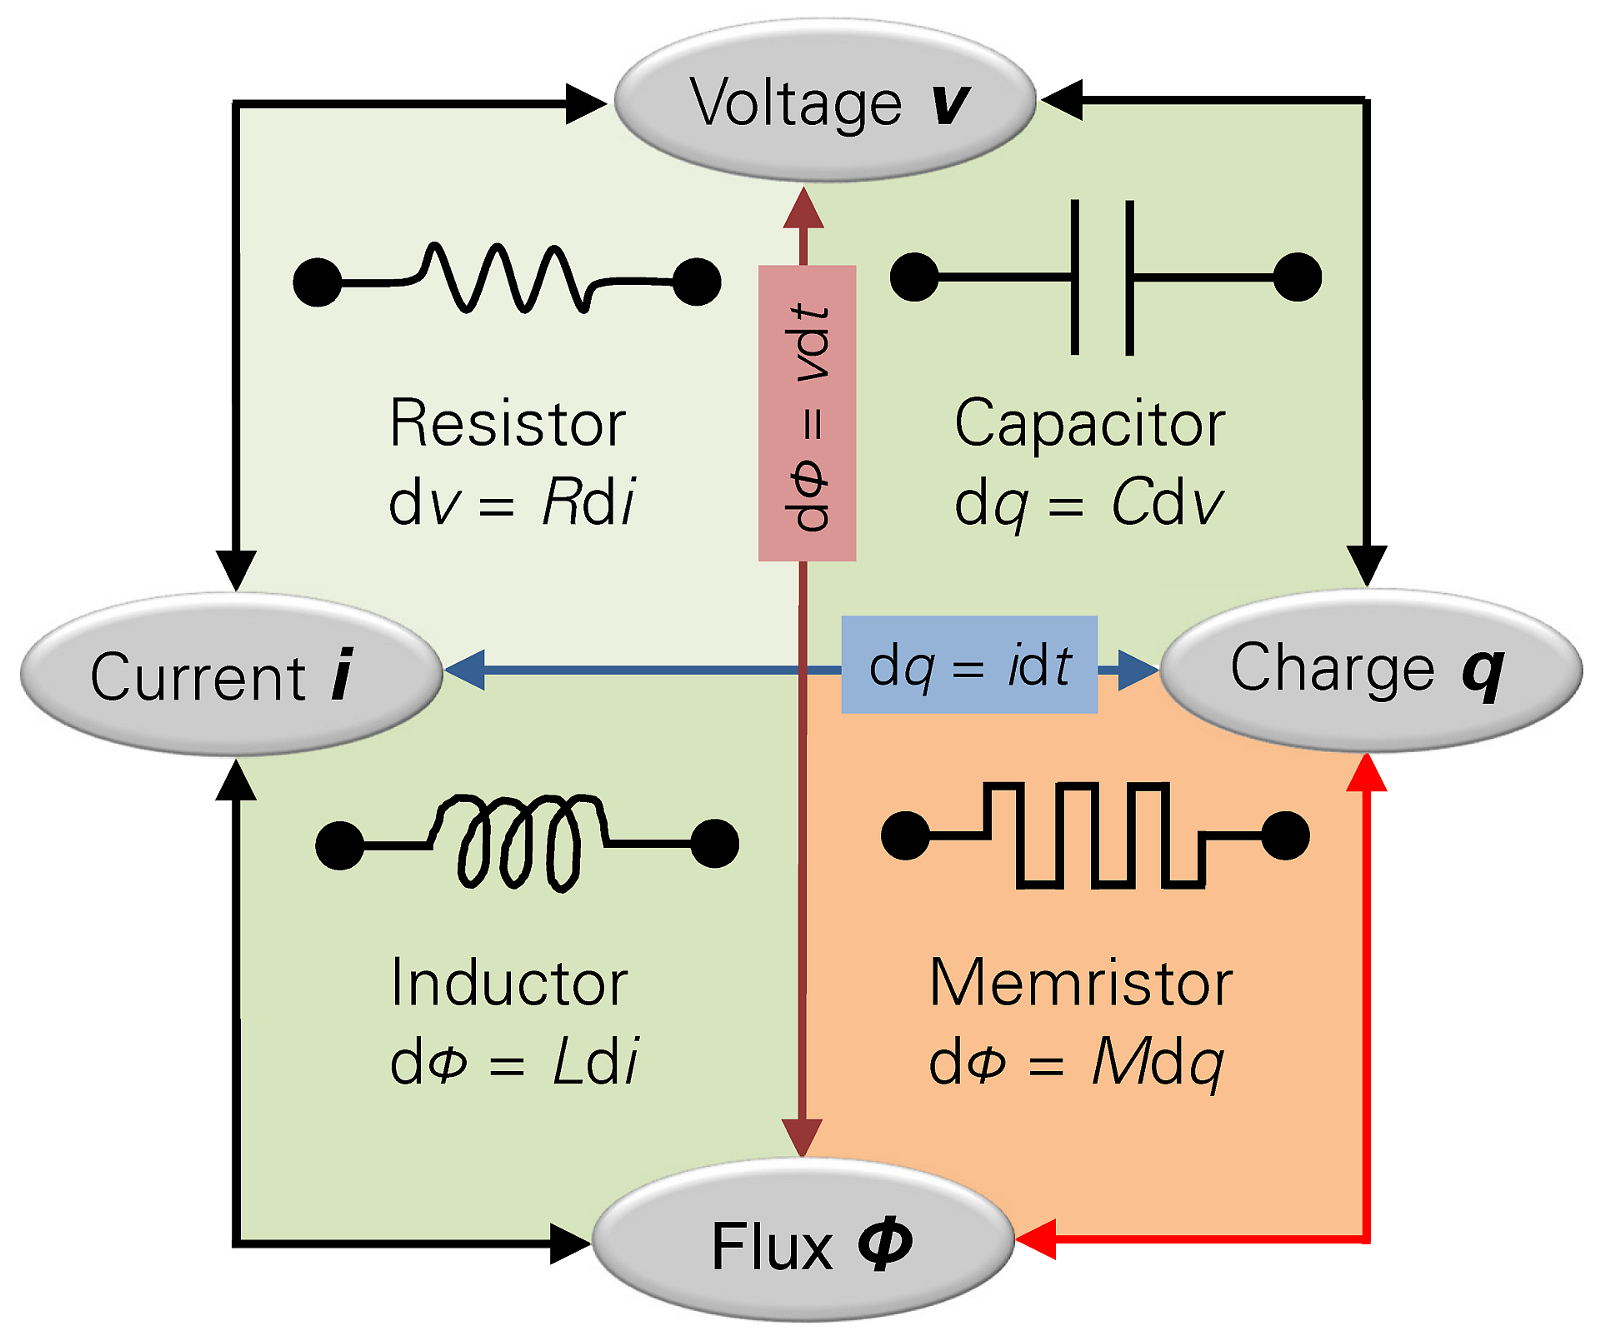 Latest In Electronics The Research Nest Medium When Voltage Is Changed Electrical Engineering Stack Exchange Image Source